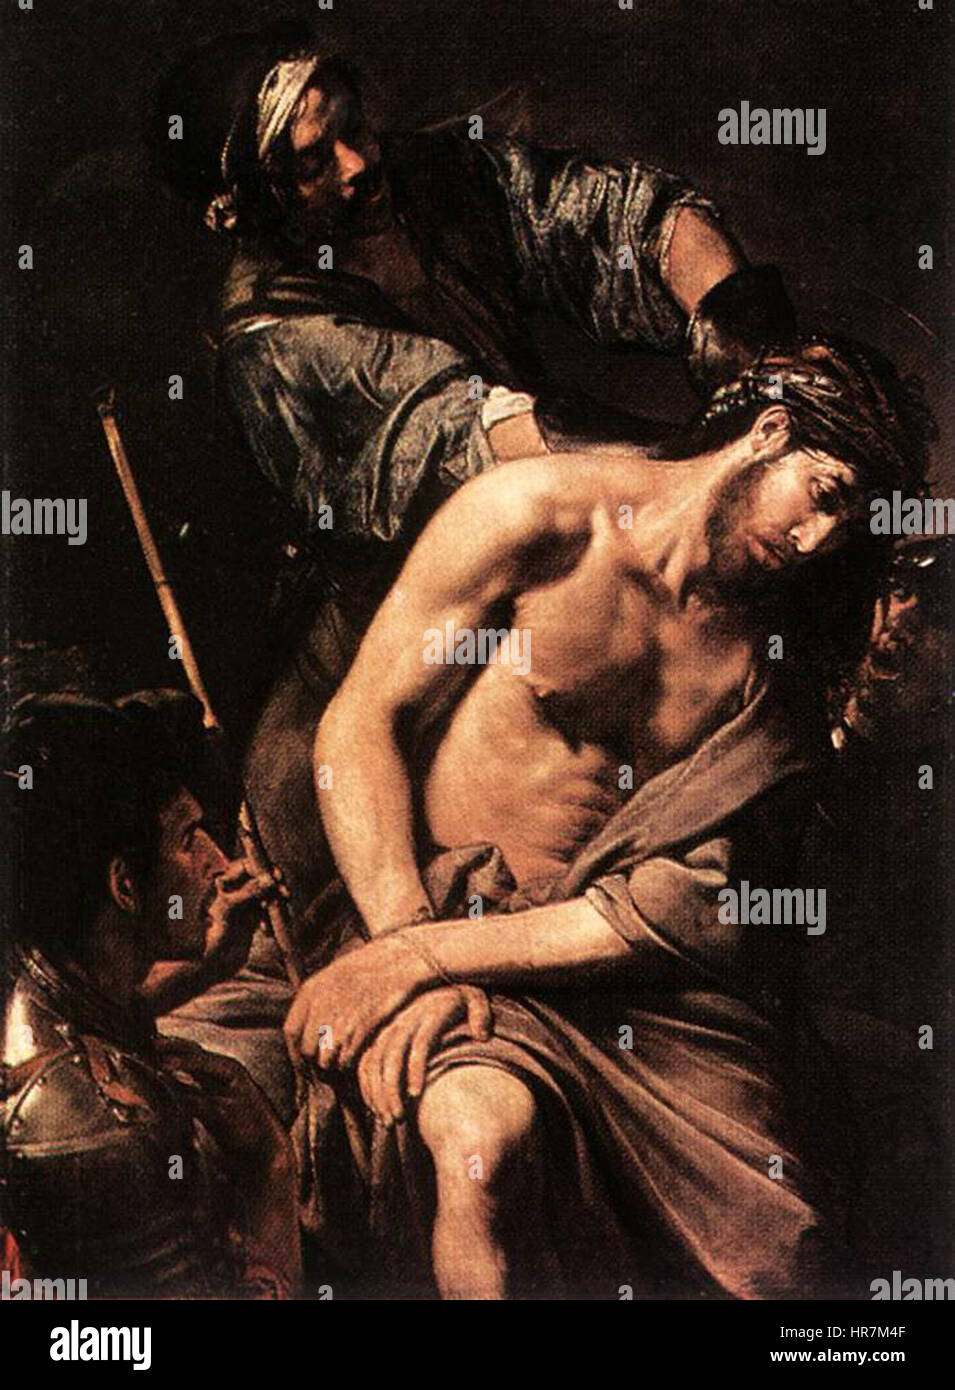 Valentin de Boulogne, Crowning with Thorns - Stock Image